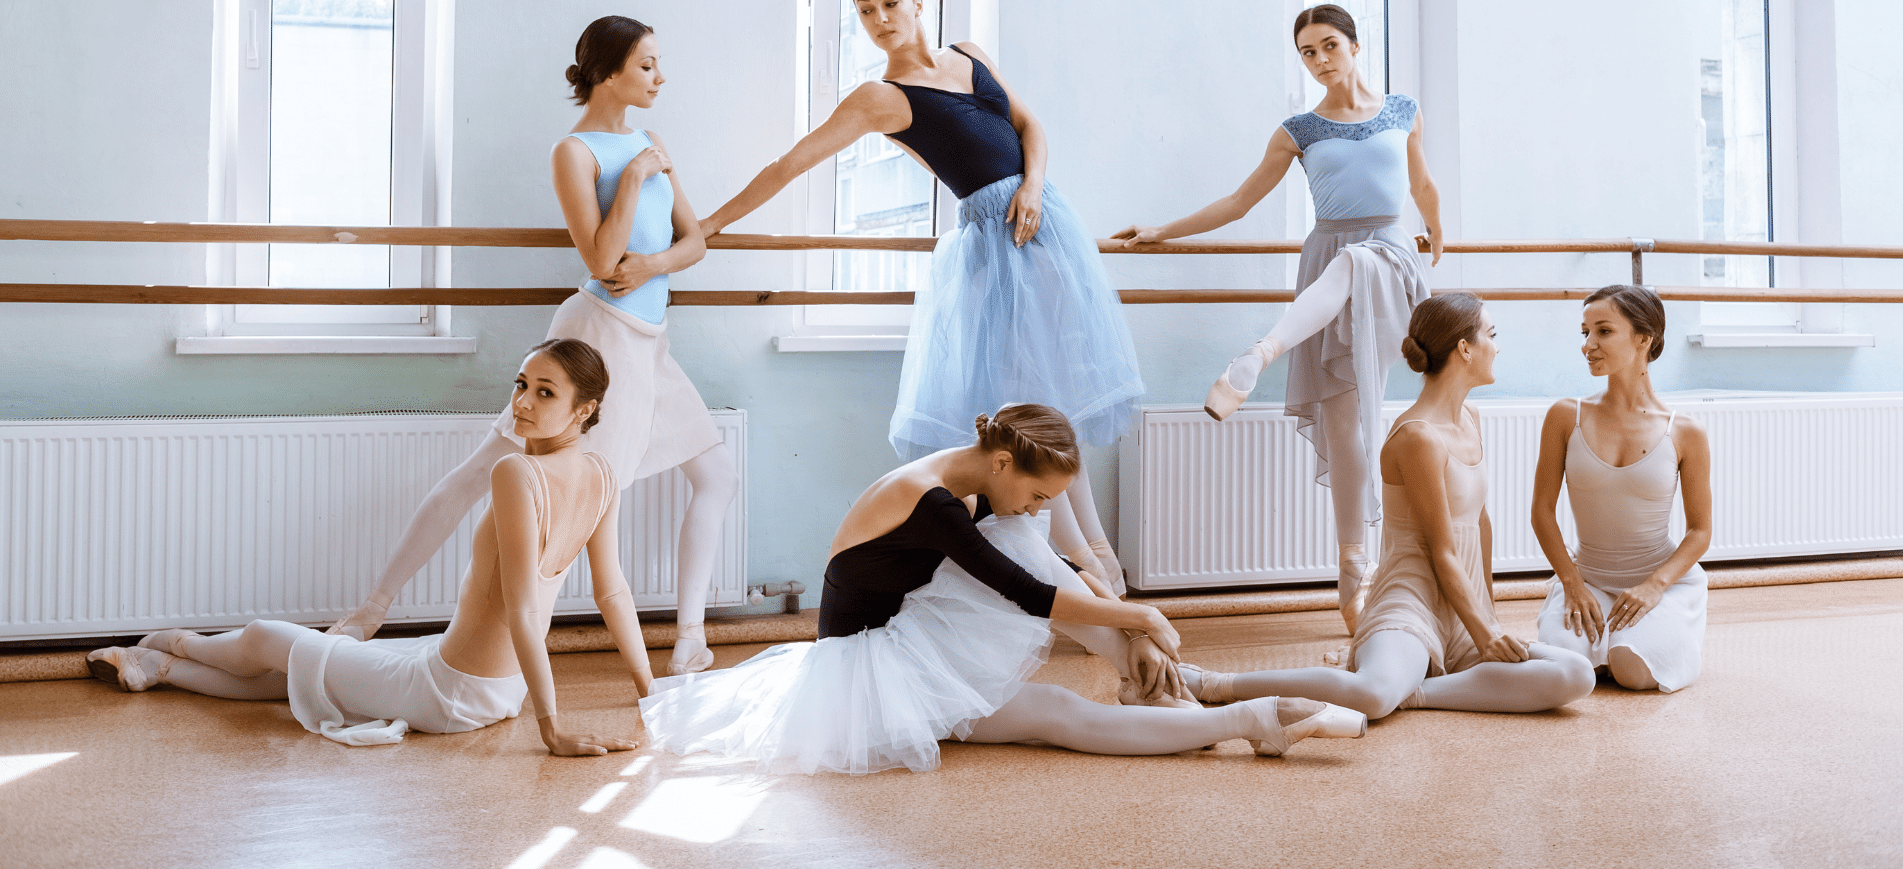 Ballet bars for studios and at home